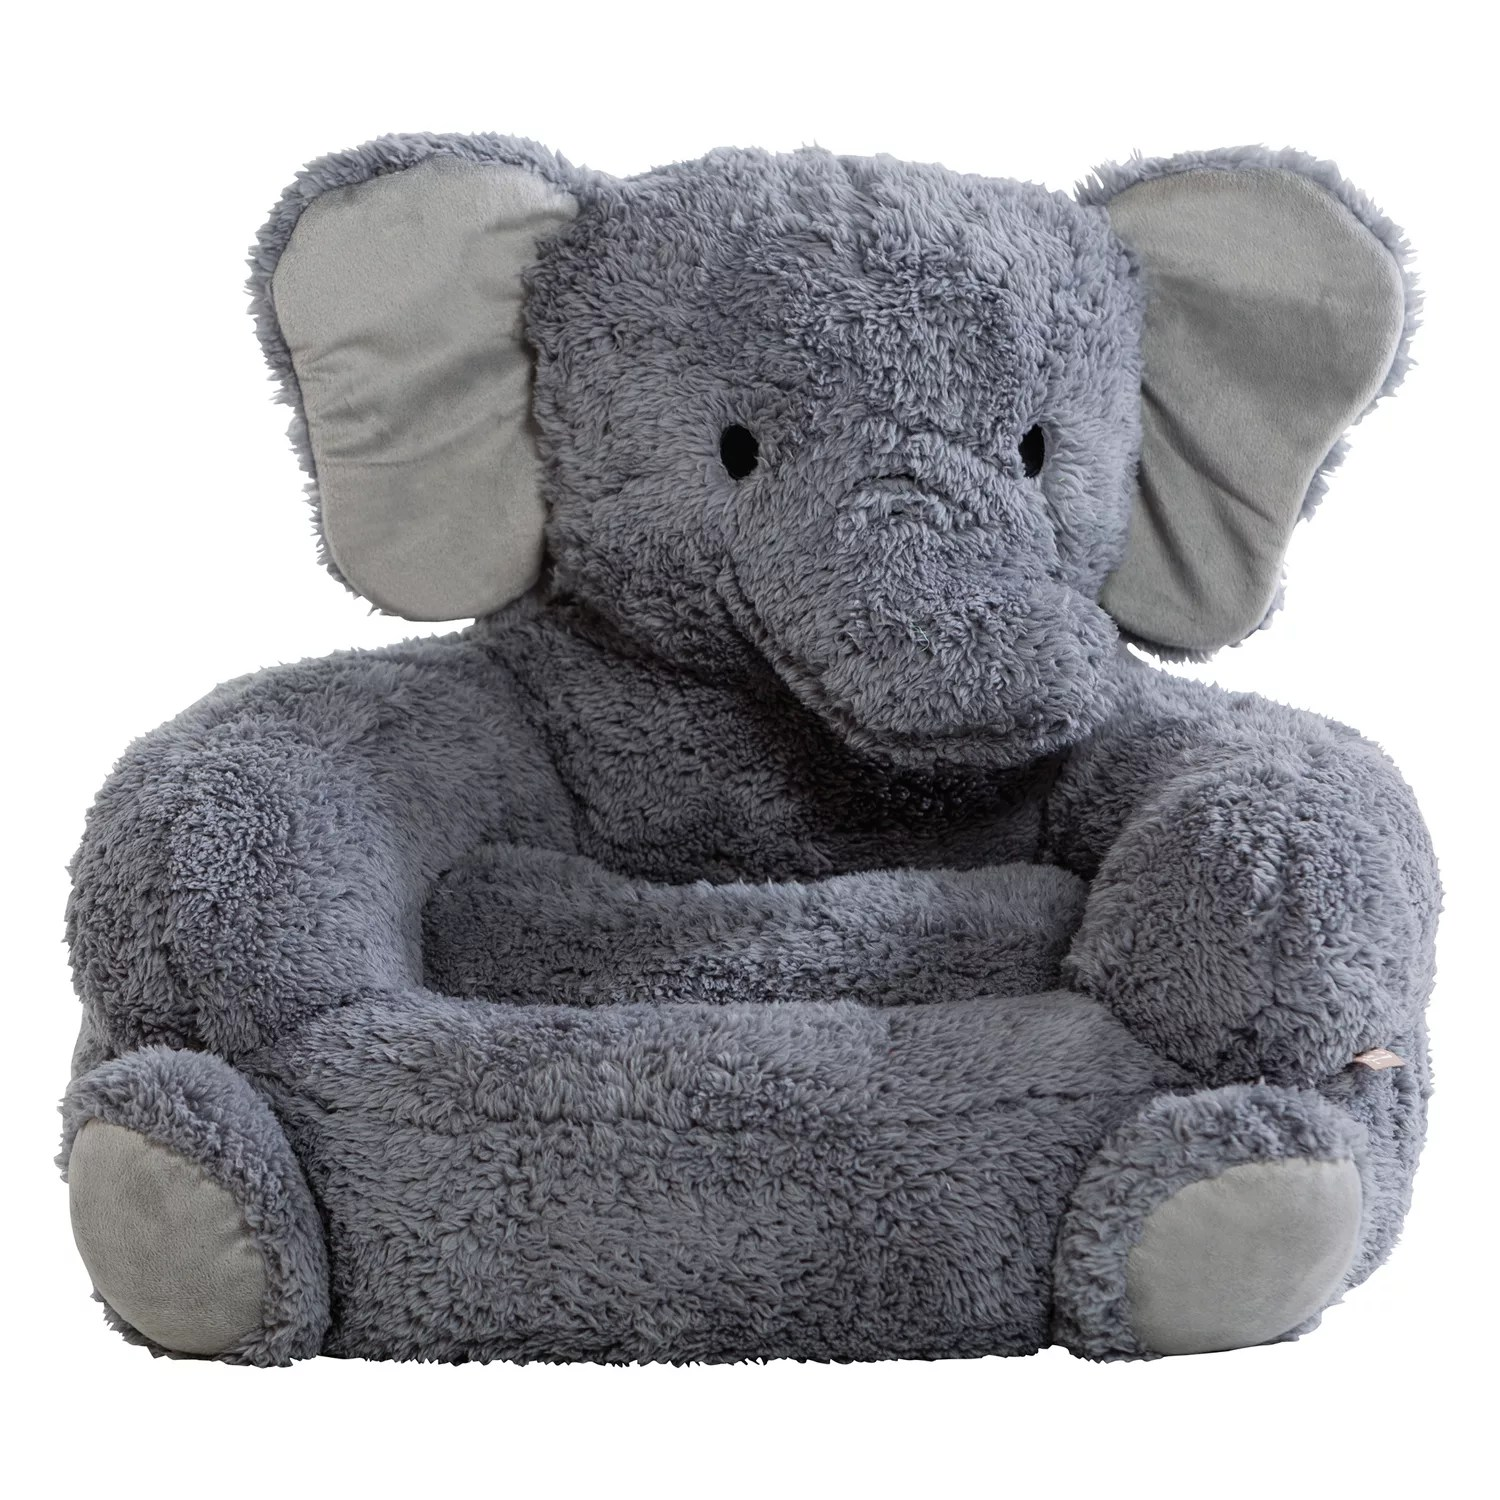 kohls baby rocking chair bent wood dining chairs trend lab plush elephant